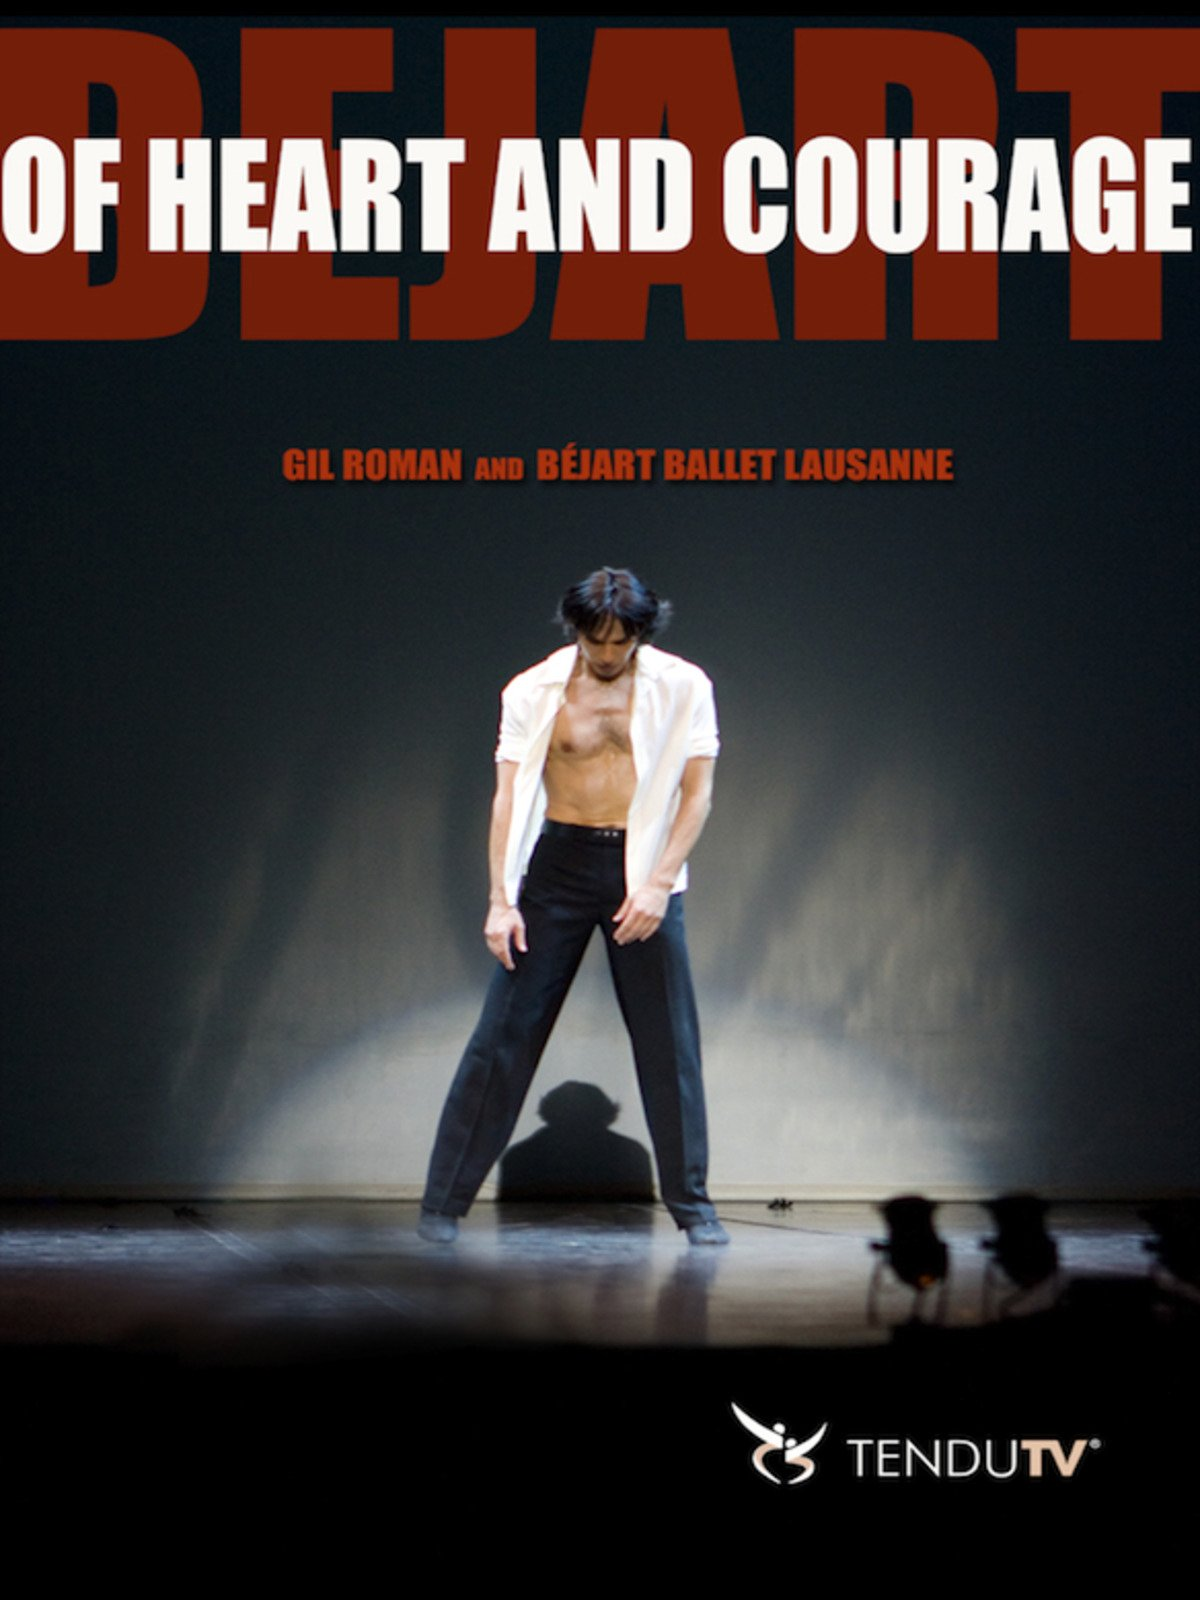 Of Heart and Courage